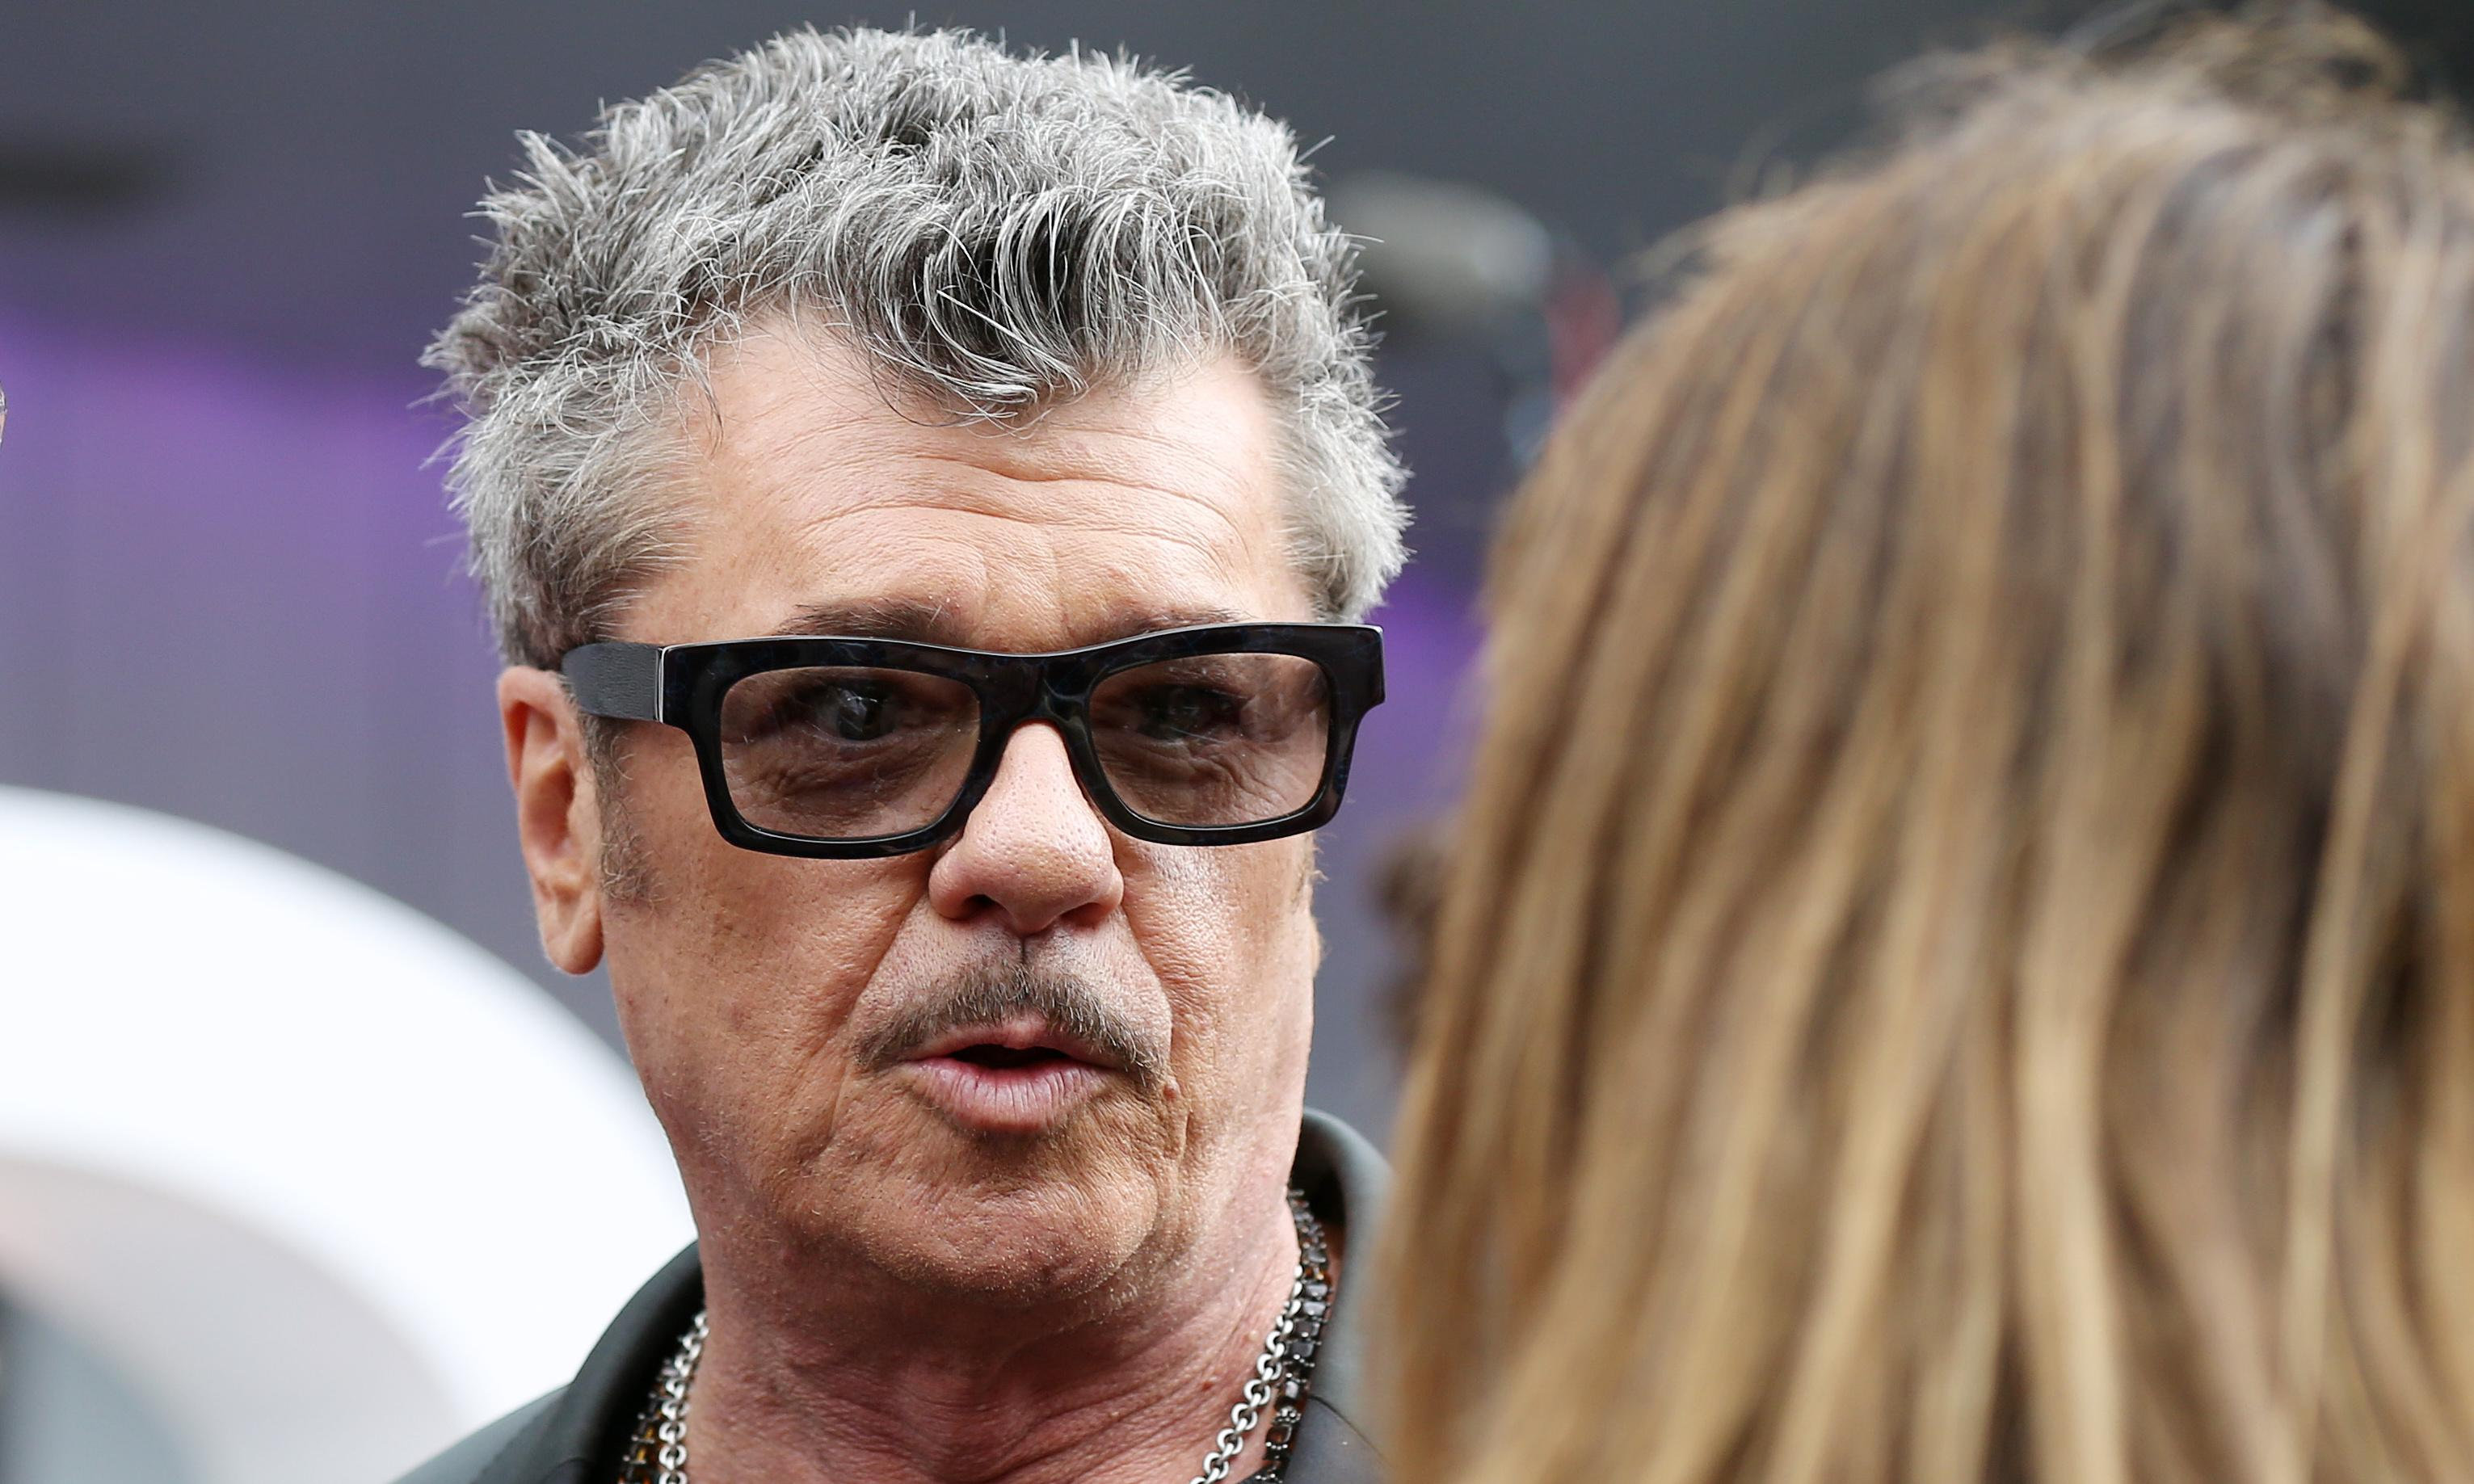 INXS lead guitarist sues rental boat operator over finger severed on board